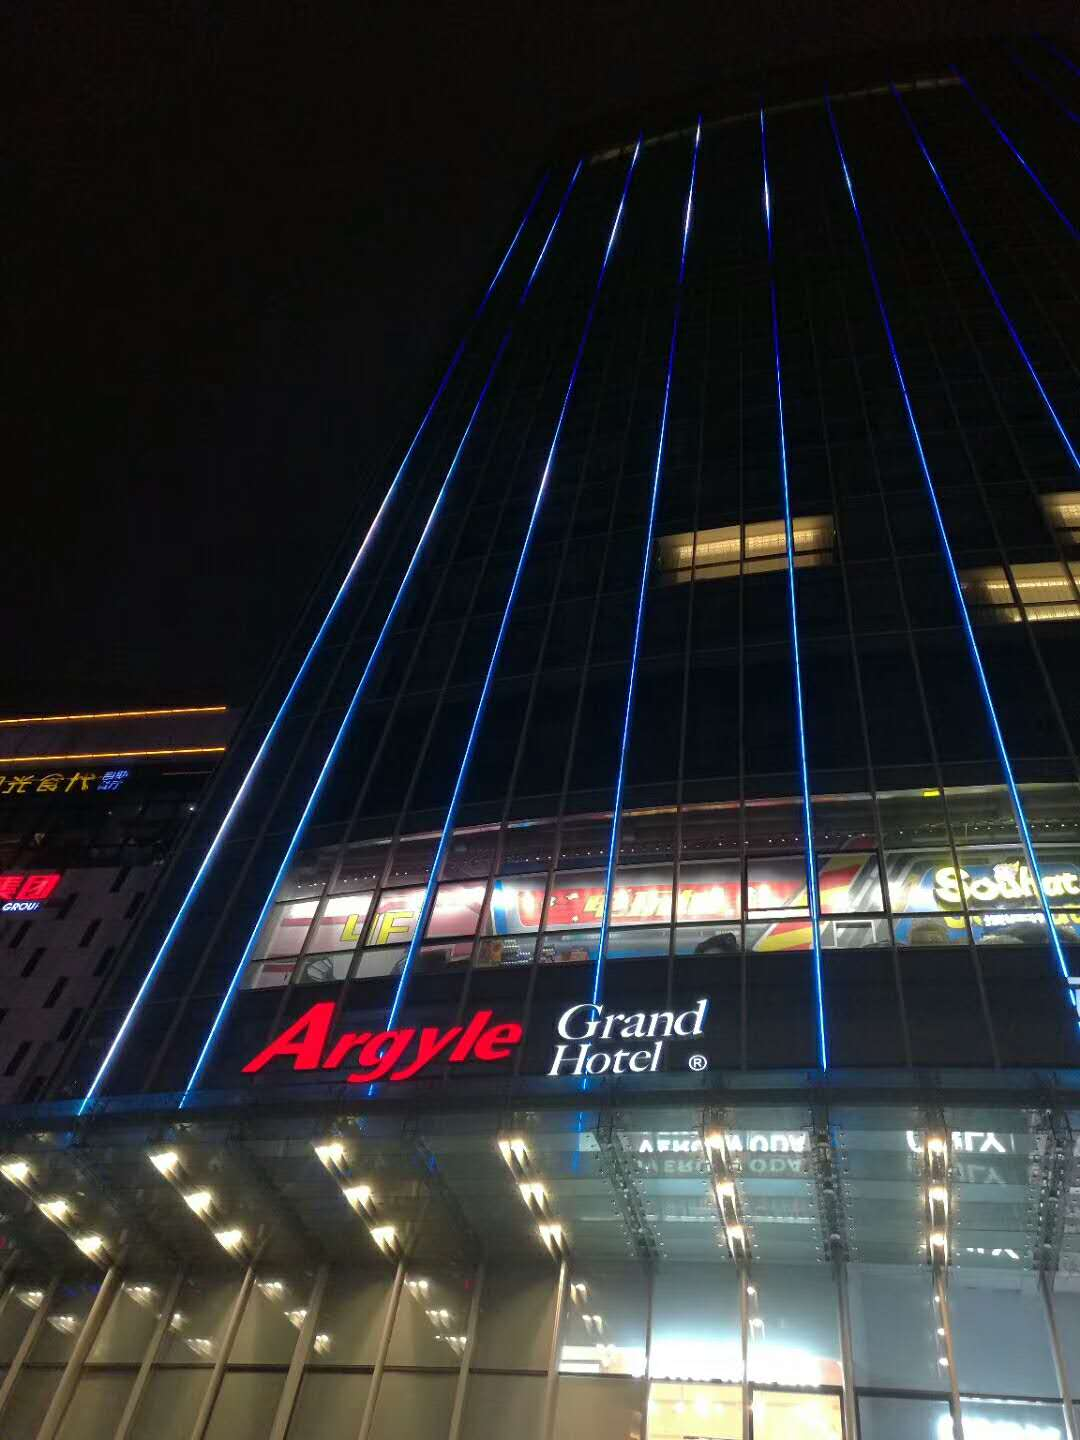 Argyle Grand Hotel Guomao